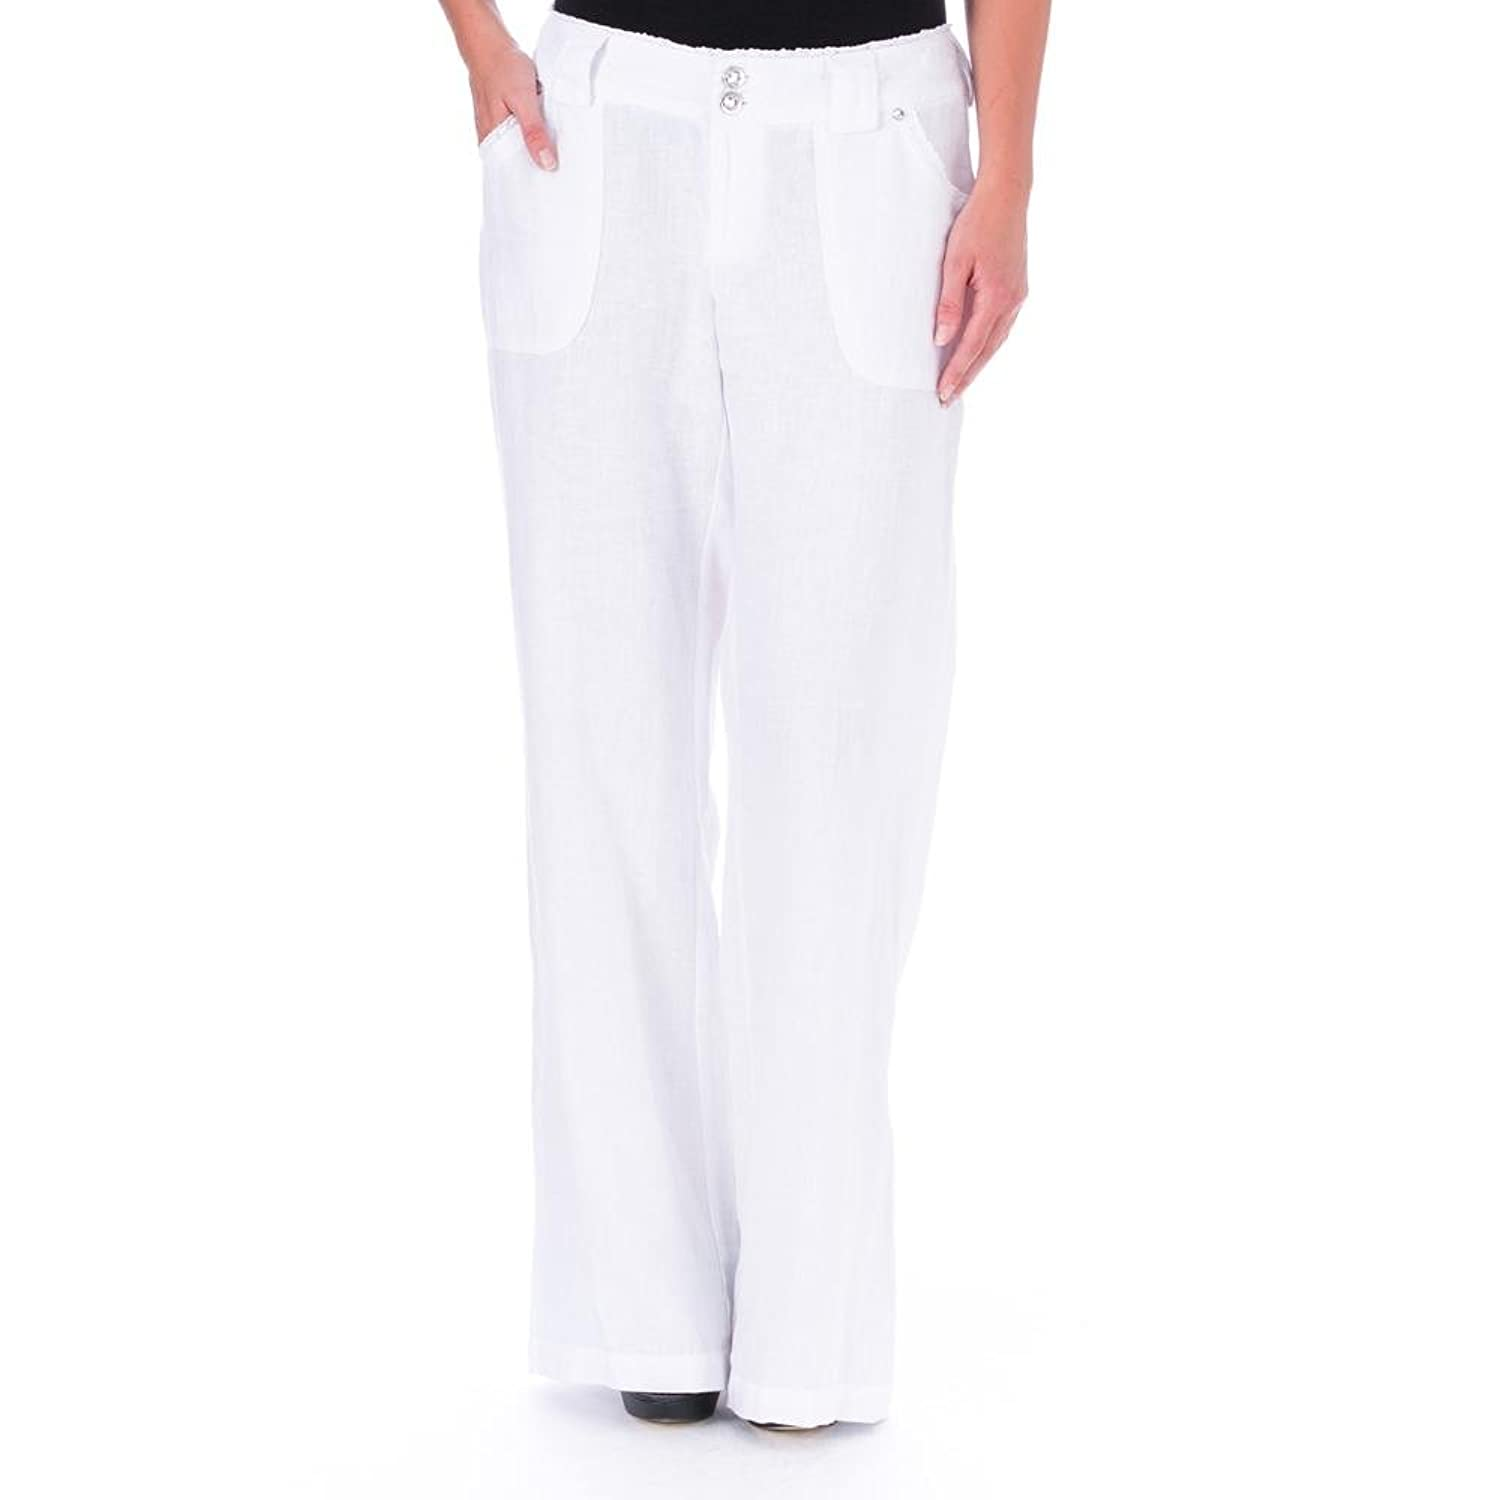 INC International Cpts Women's Laced Trimmed Curvy 100% Linen Pants White 2L LONG